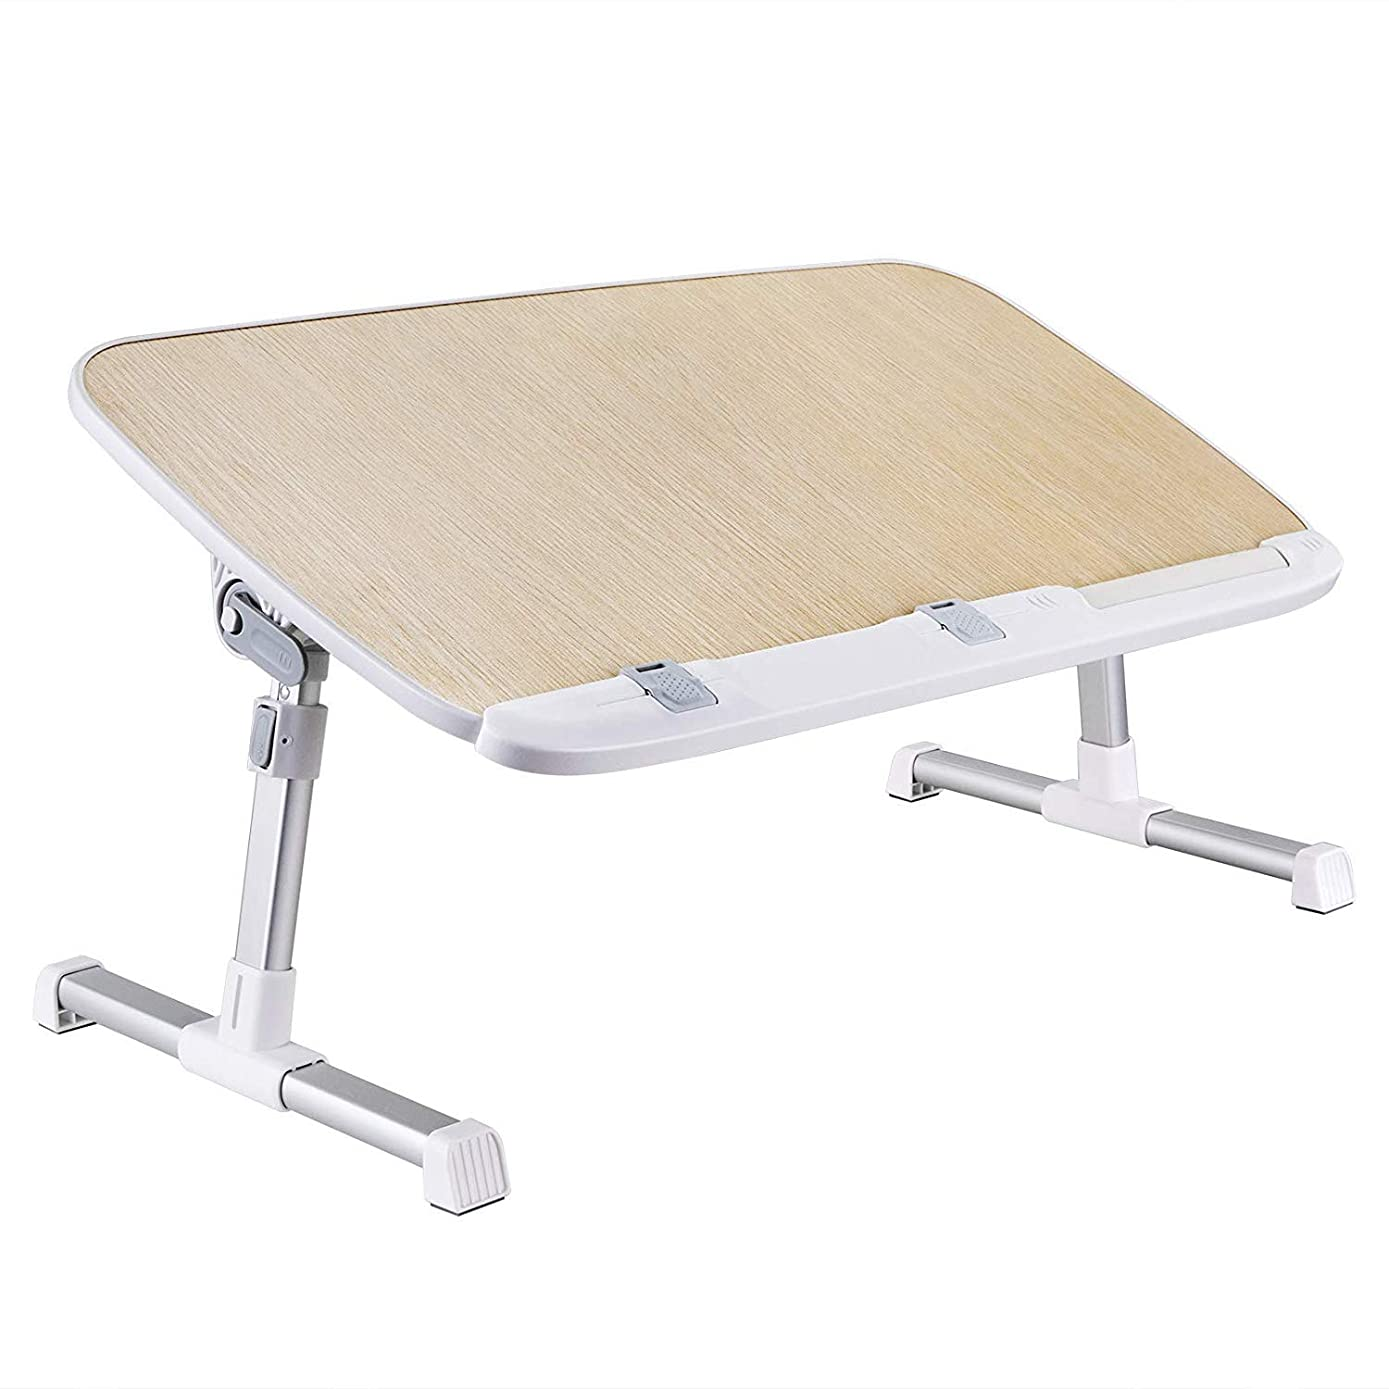 Laptop Lap Desk, Foldable Laptop Table Stand, Height Adjustable Laptop Desk for Bed and Sofa, Portable Lap Desk, Bed Tray Table, Office Standing Desk Riser, Computer Desk, Drafting Table